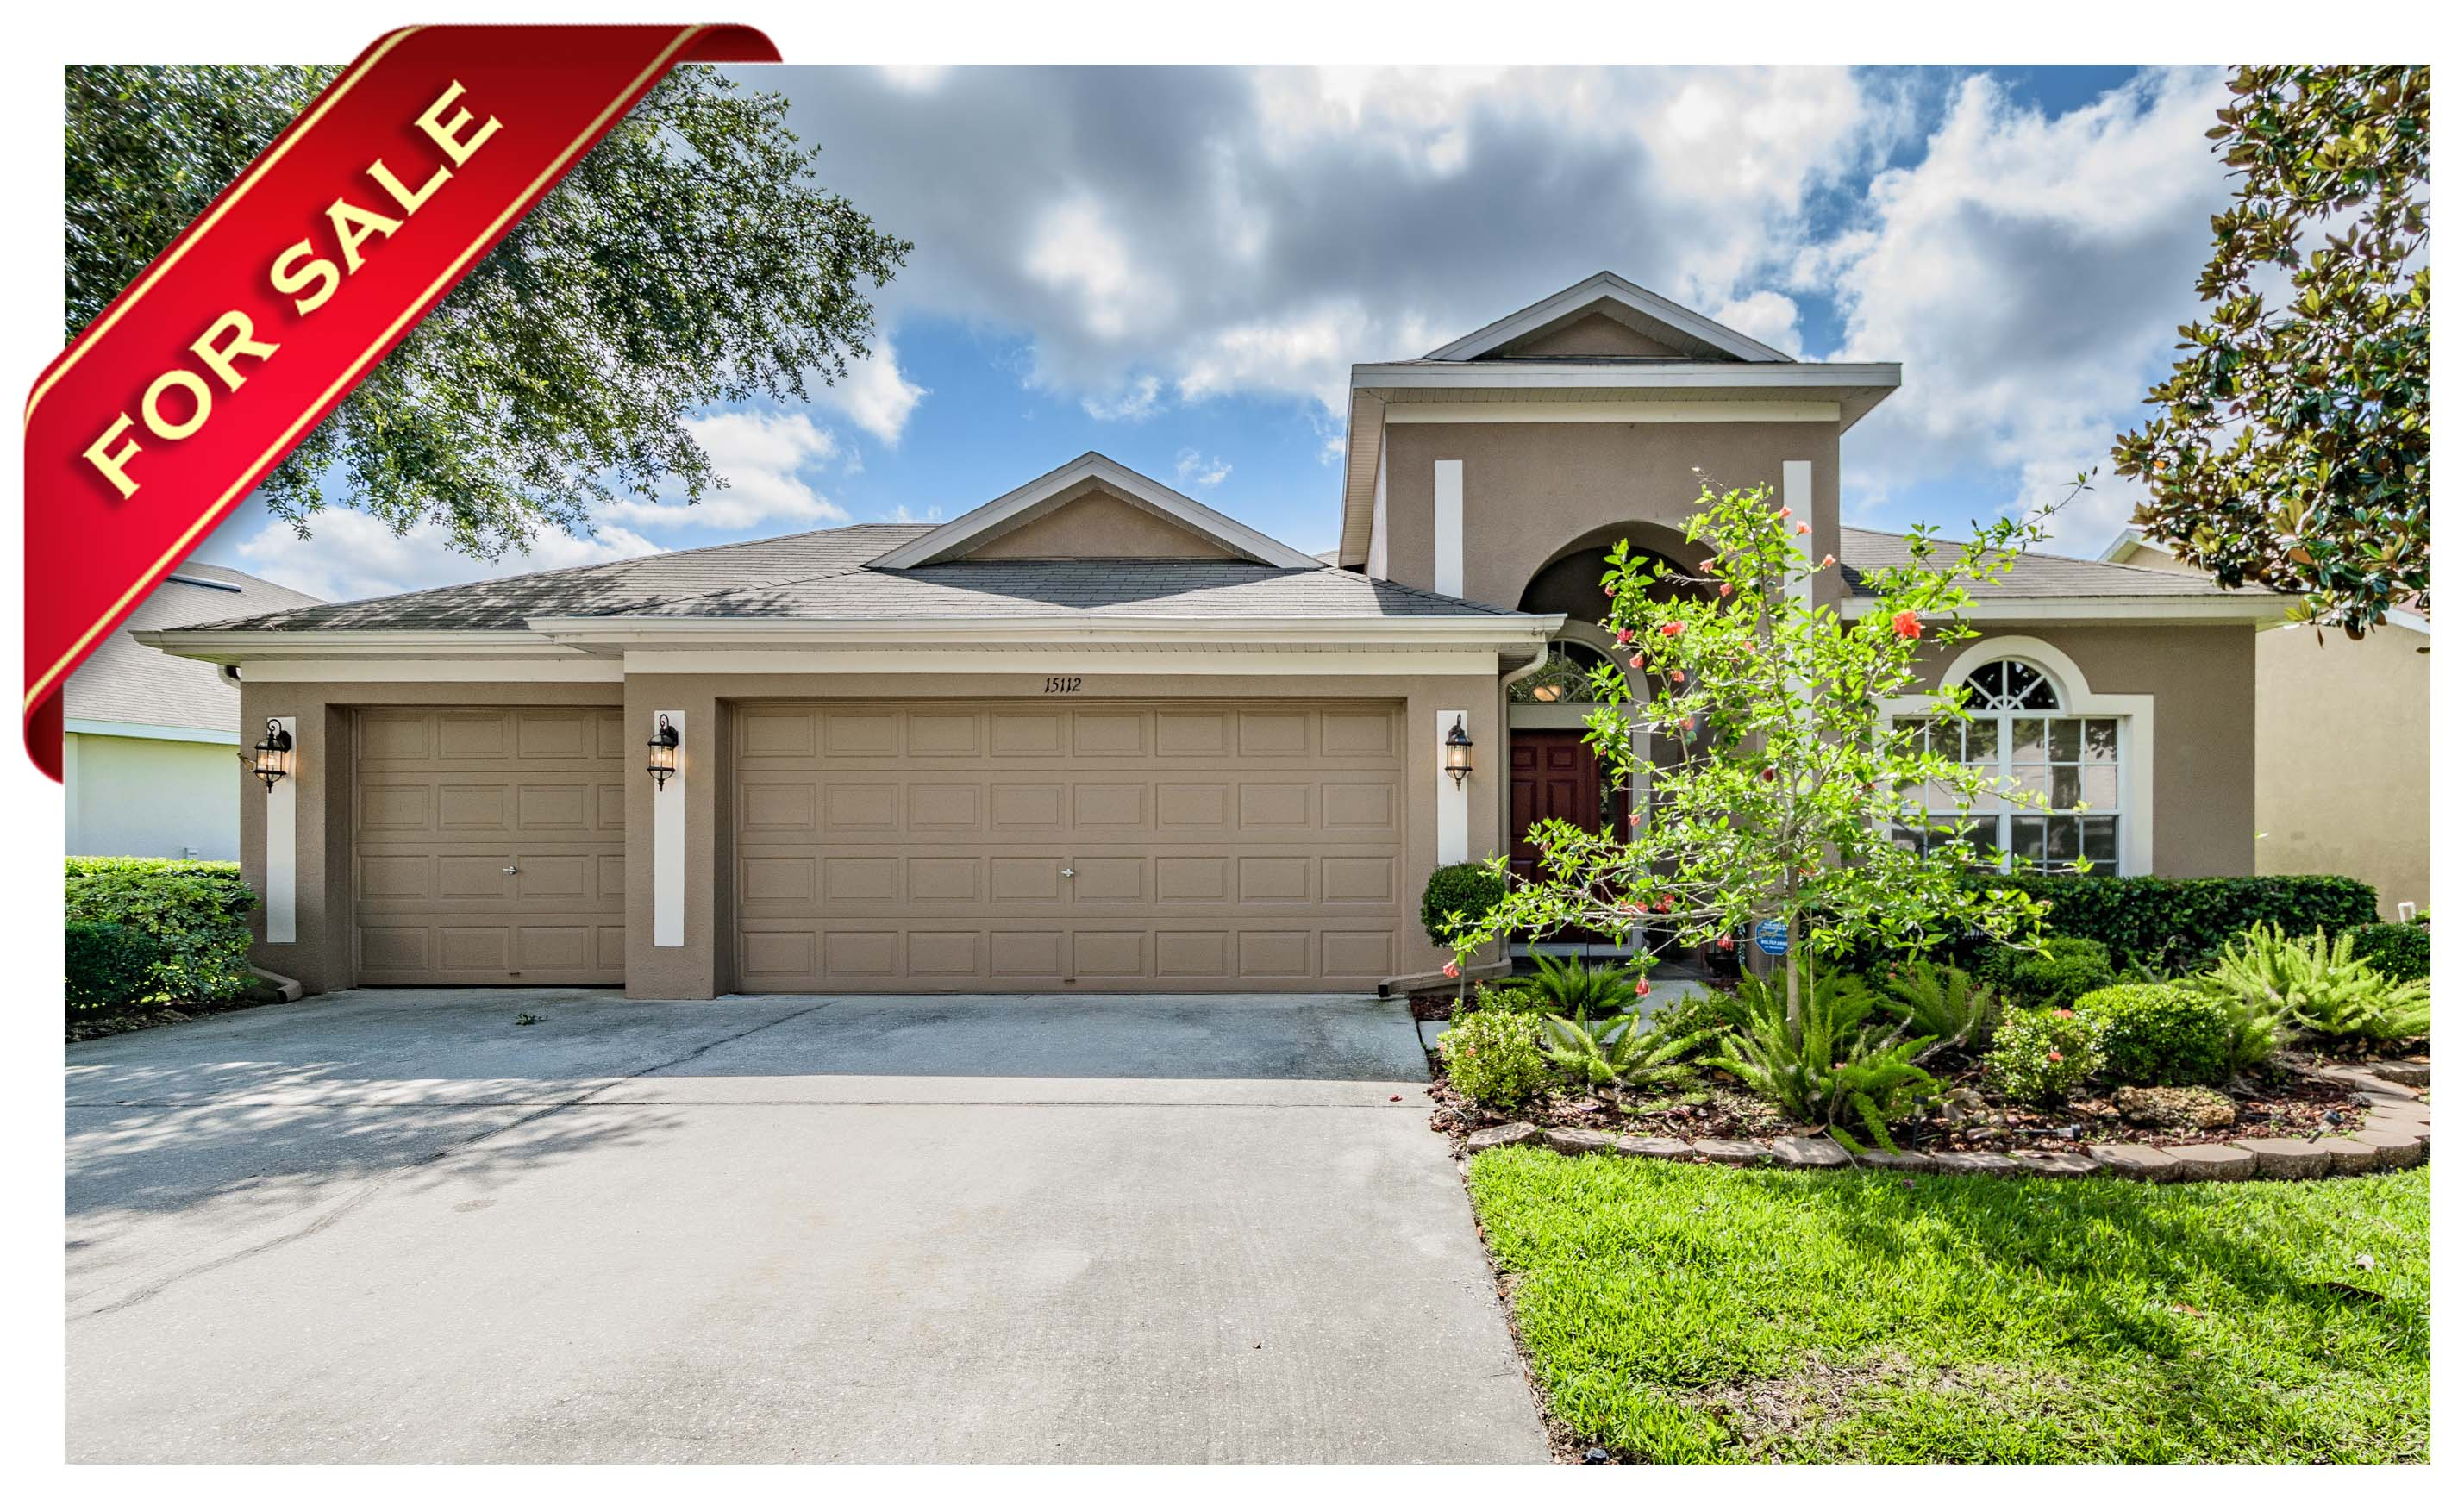 Fishhawk ranch home for sale at 15112 shearcrest dr lithia fl for Fish hawk ranch